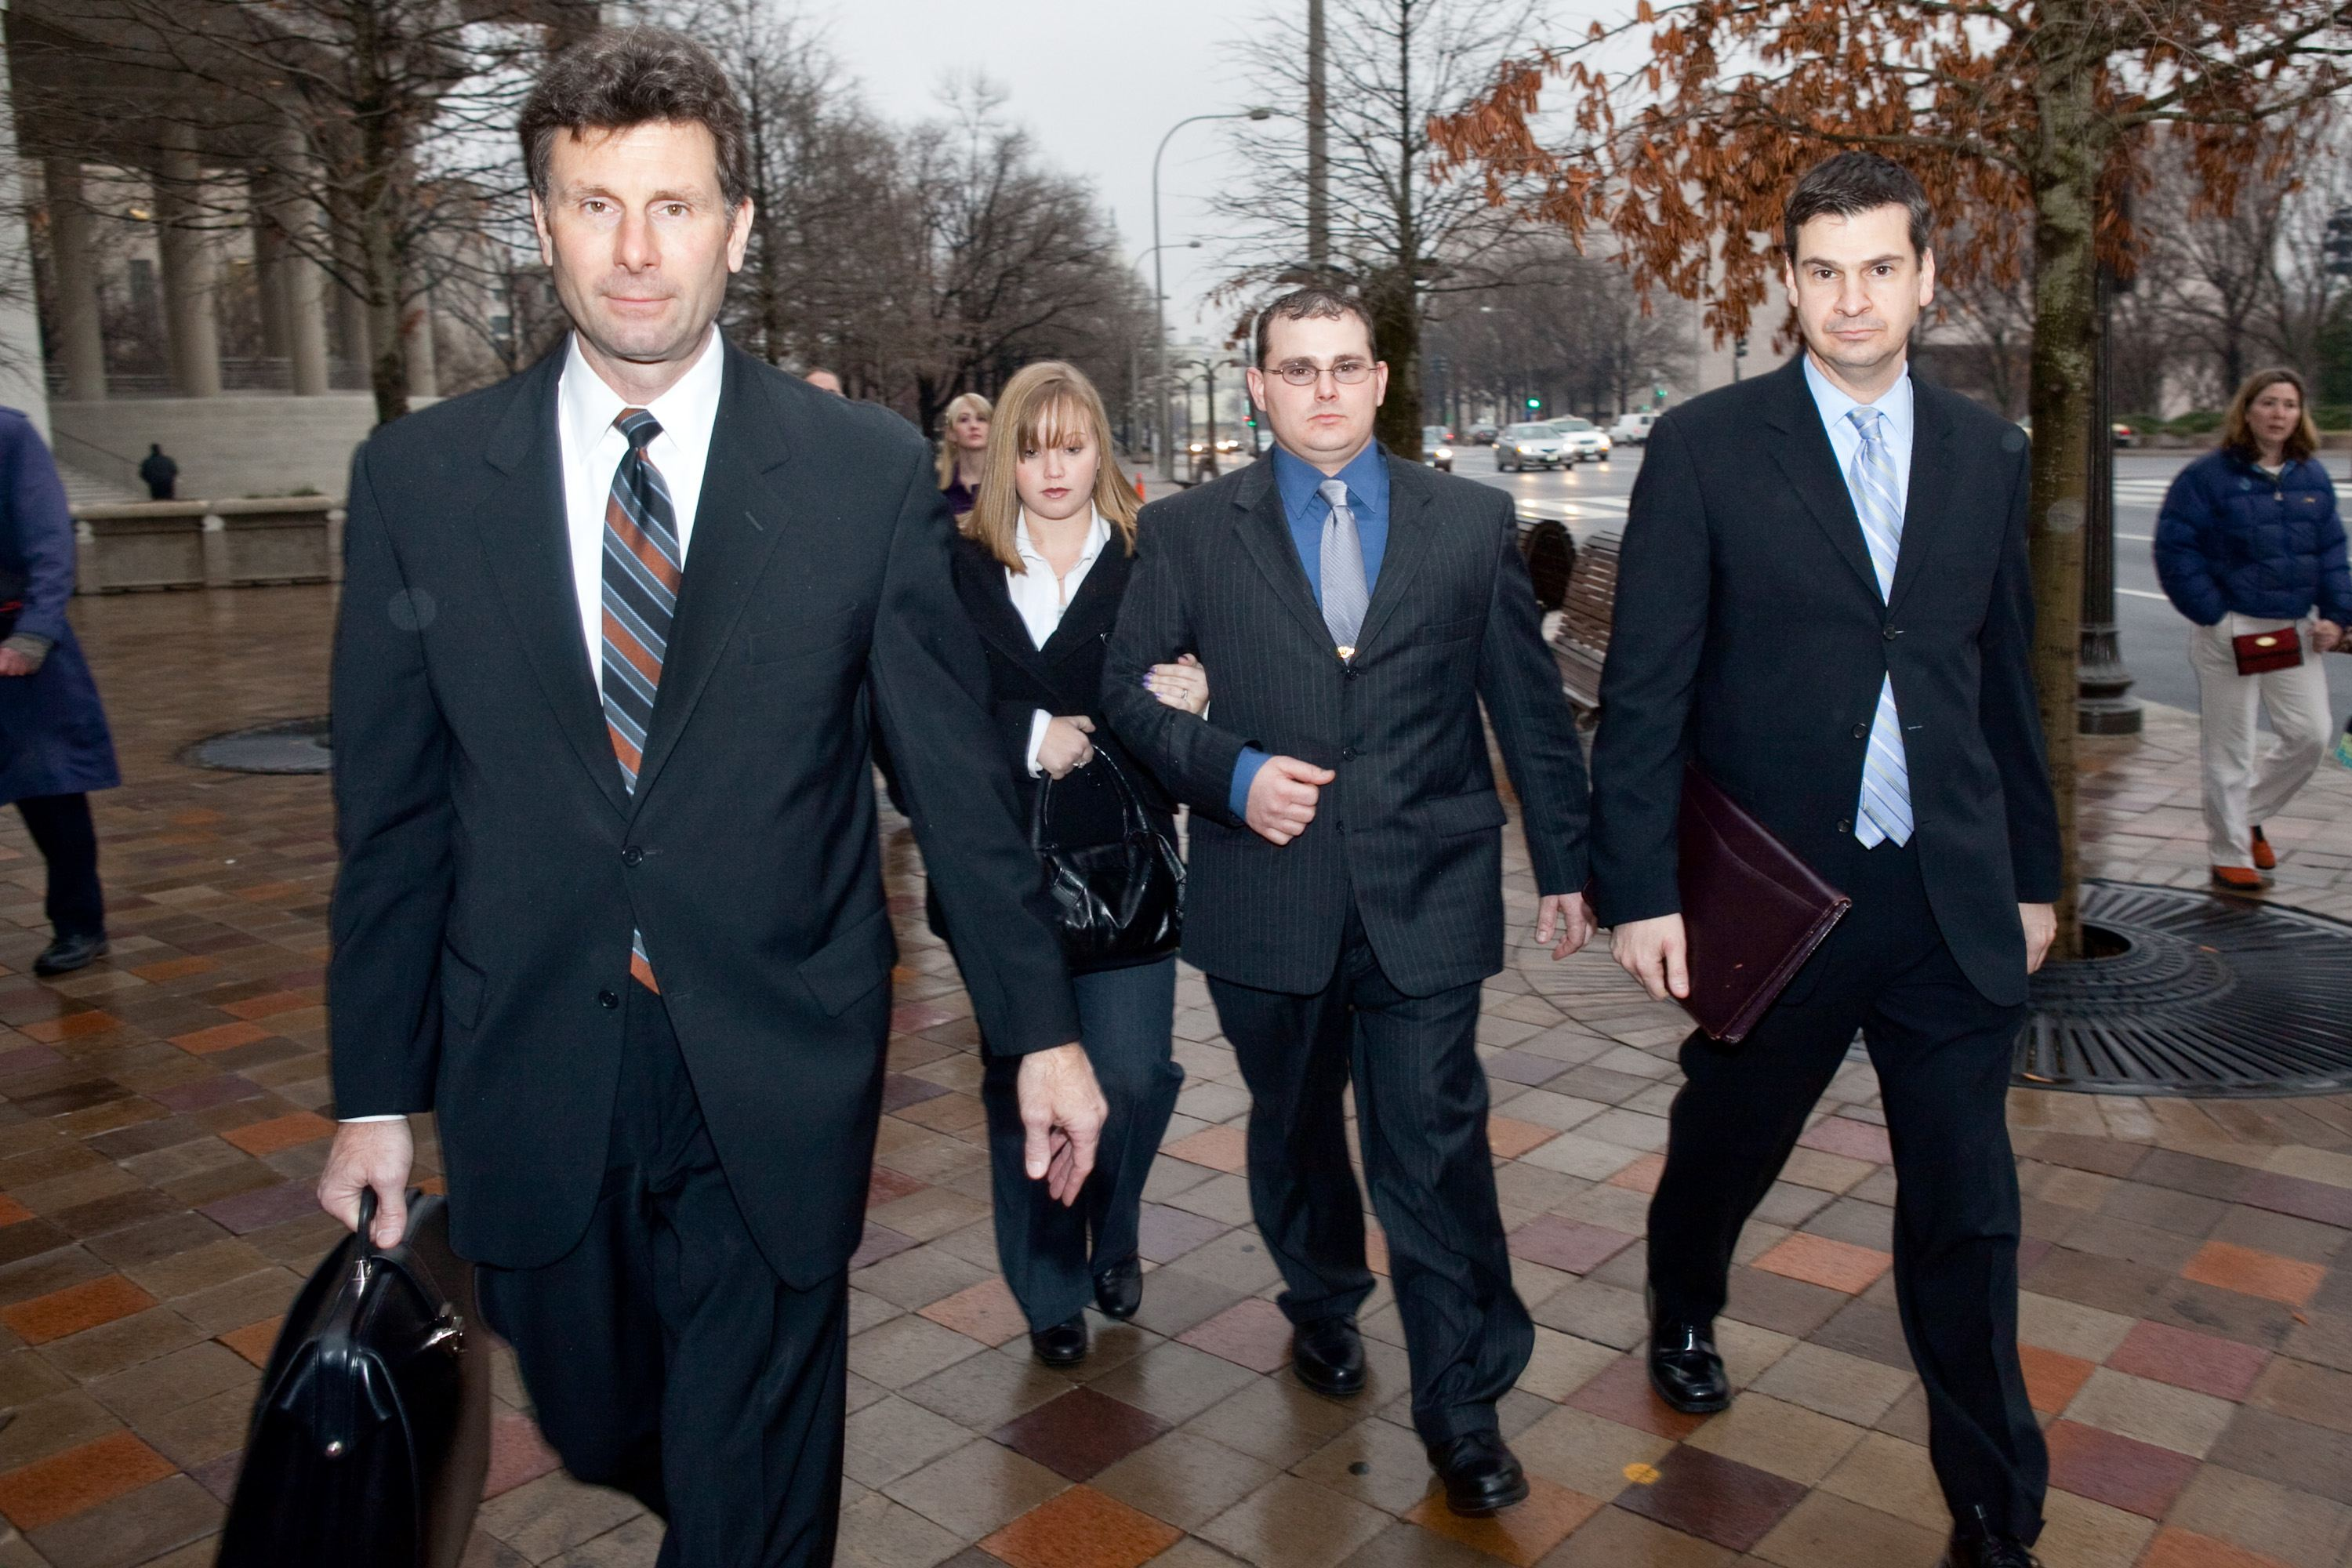 Blackwater Guards Charged With Killing Innocent Iraqis Arraigned In Court